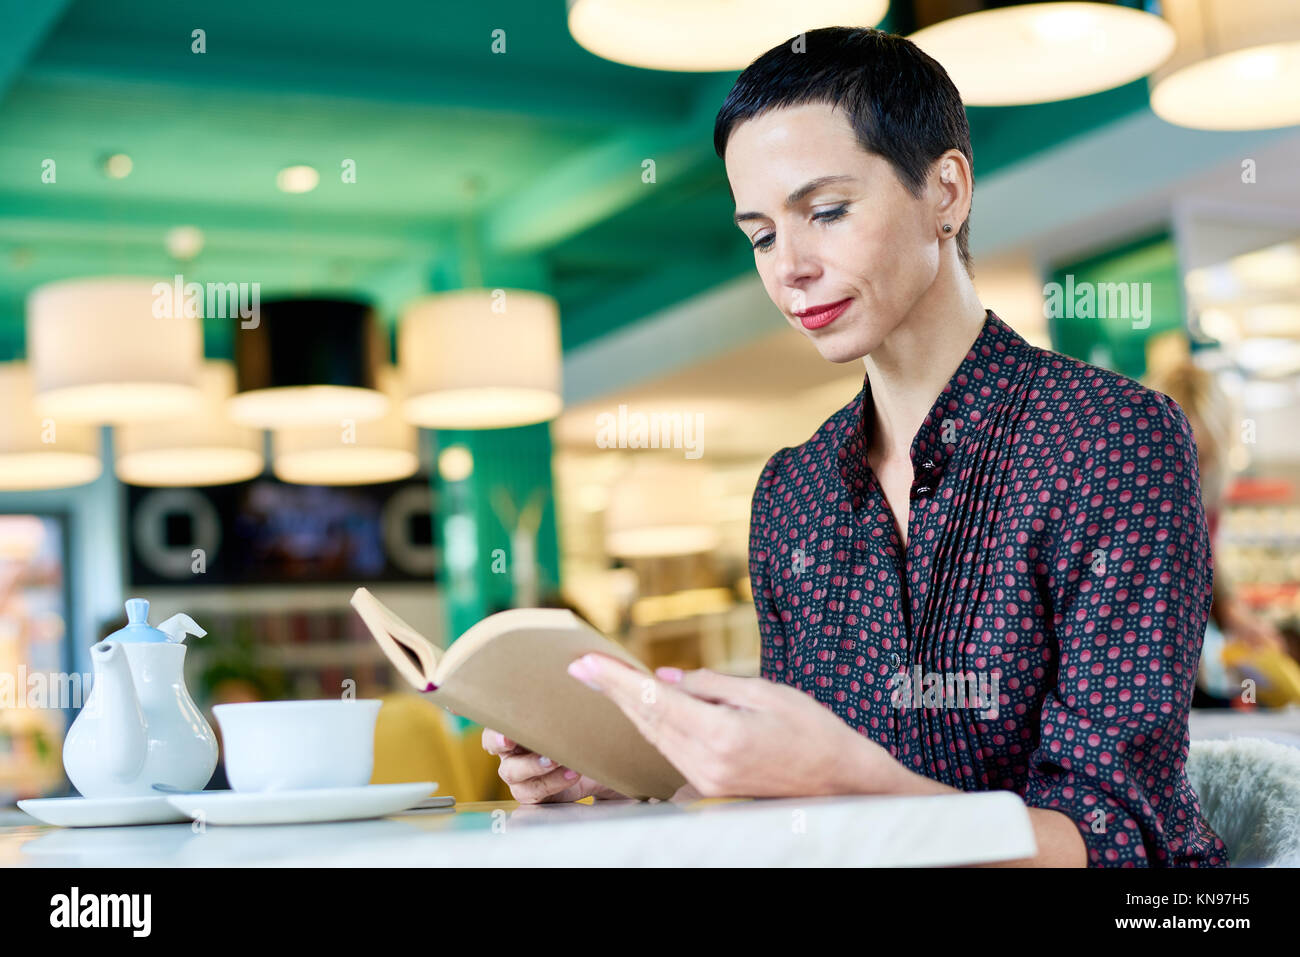 Elegant Woman Reading Book in Cafe Photo Stock